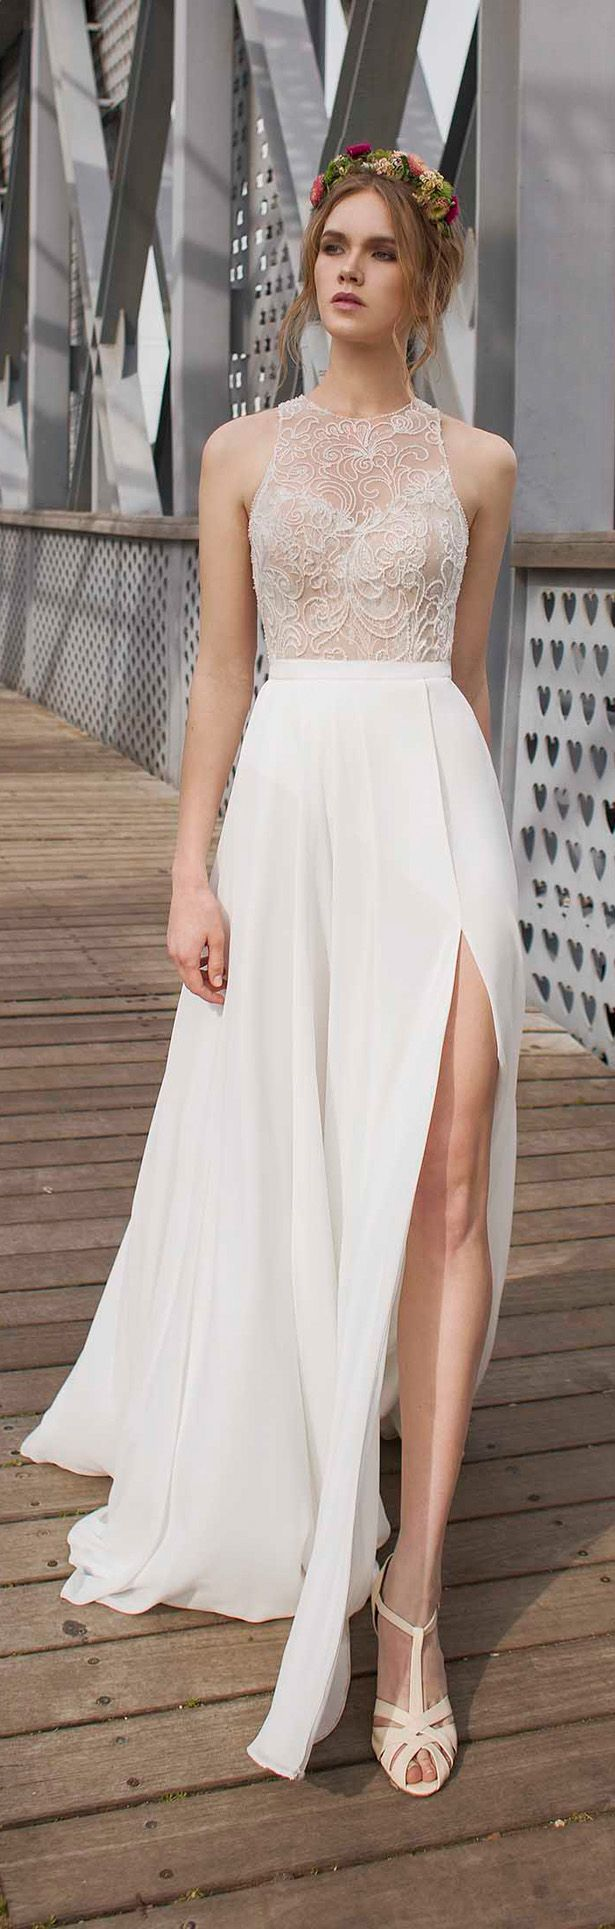 Best 25+ Civil wedding dresses ideas on Pinterest | Vintage ...